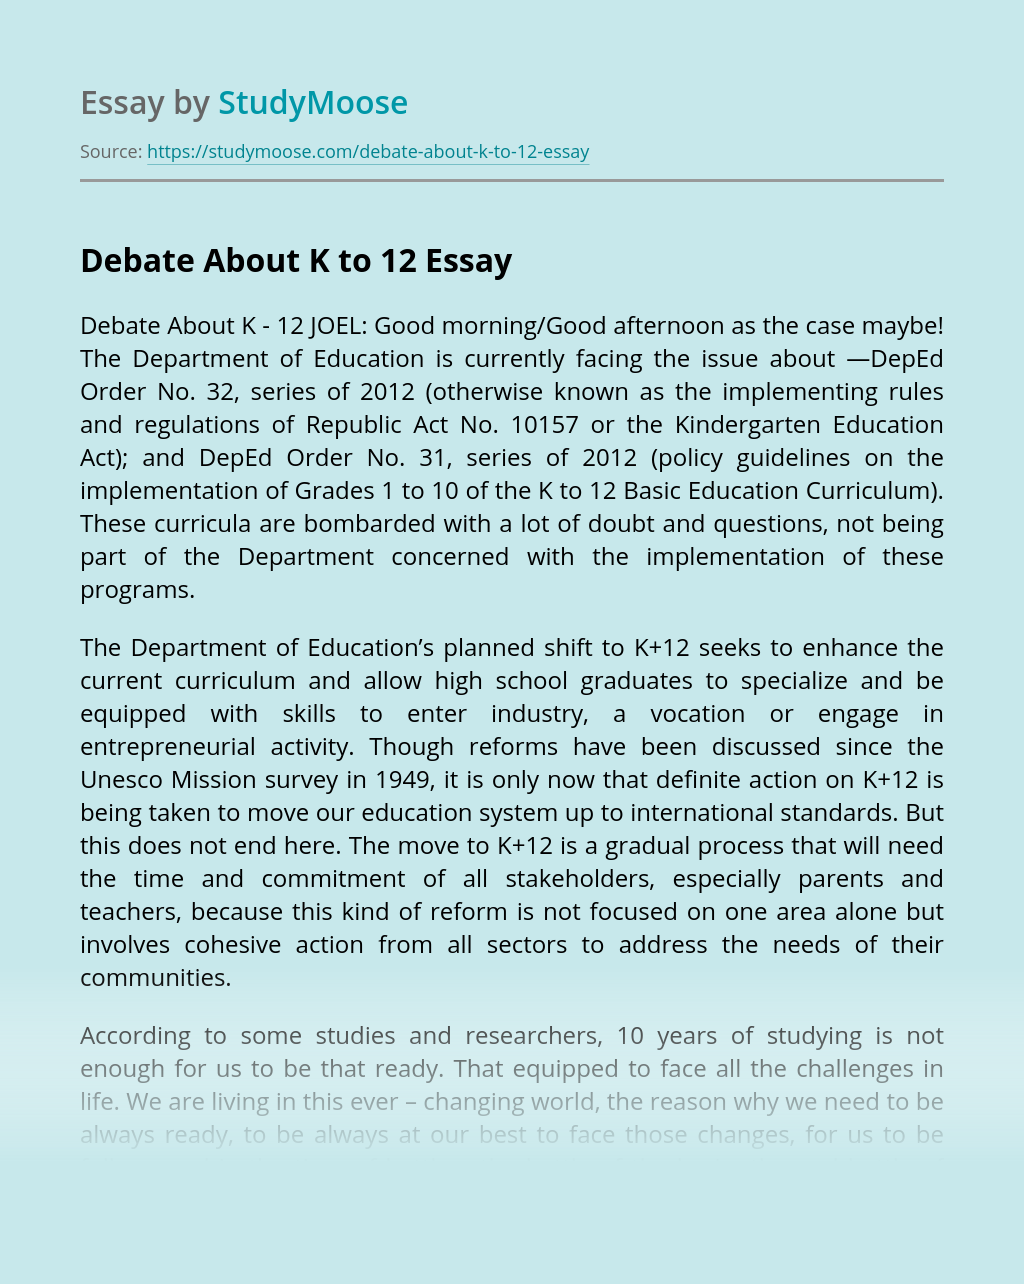 Debate About K to 12